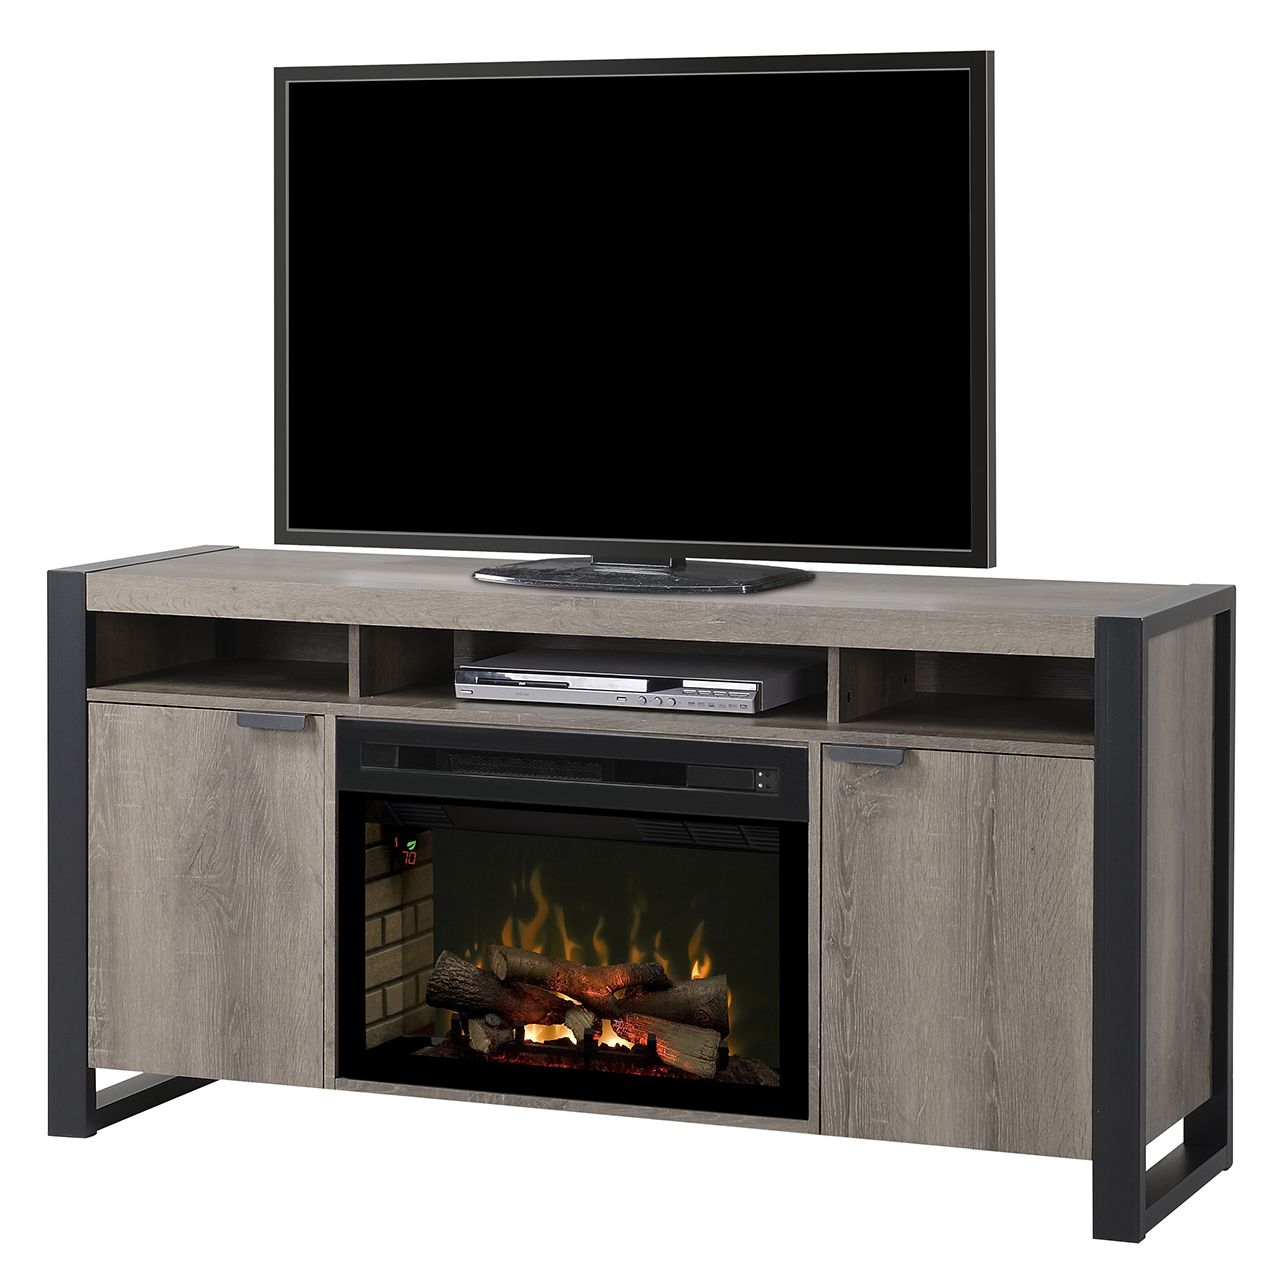 dimplex electric fireplaces media consoles products pierre rh pinterest com dimplex windsor media electric fireplace reviews dimplex media fireplace reviews